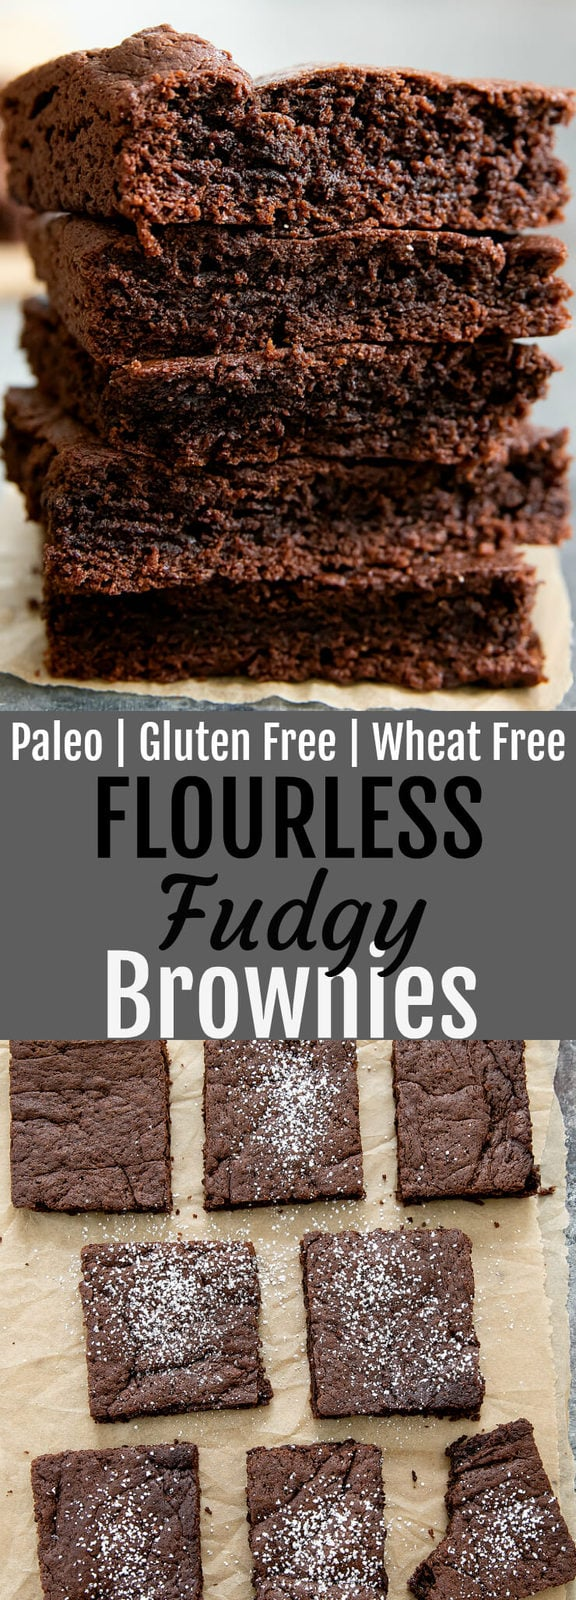 Paleo Fudgy Brownies. These one bowl brownies are flourless, gluten free, wheat free and refined sugar free. Even though they are healthier, they taste just like regular brownies!